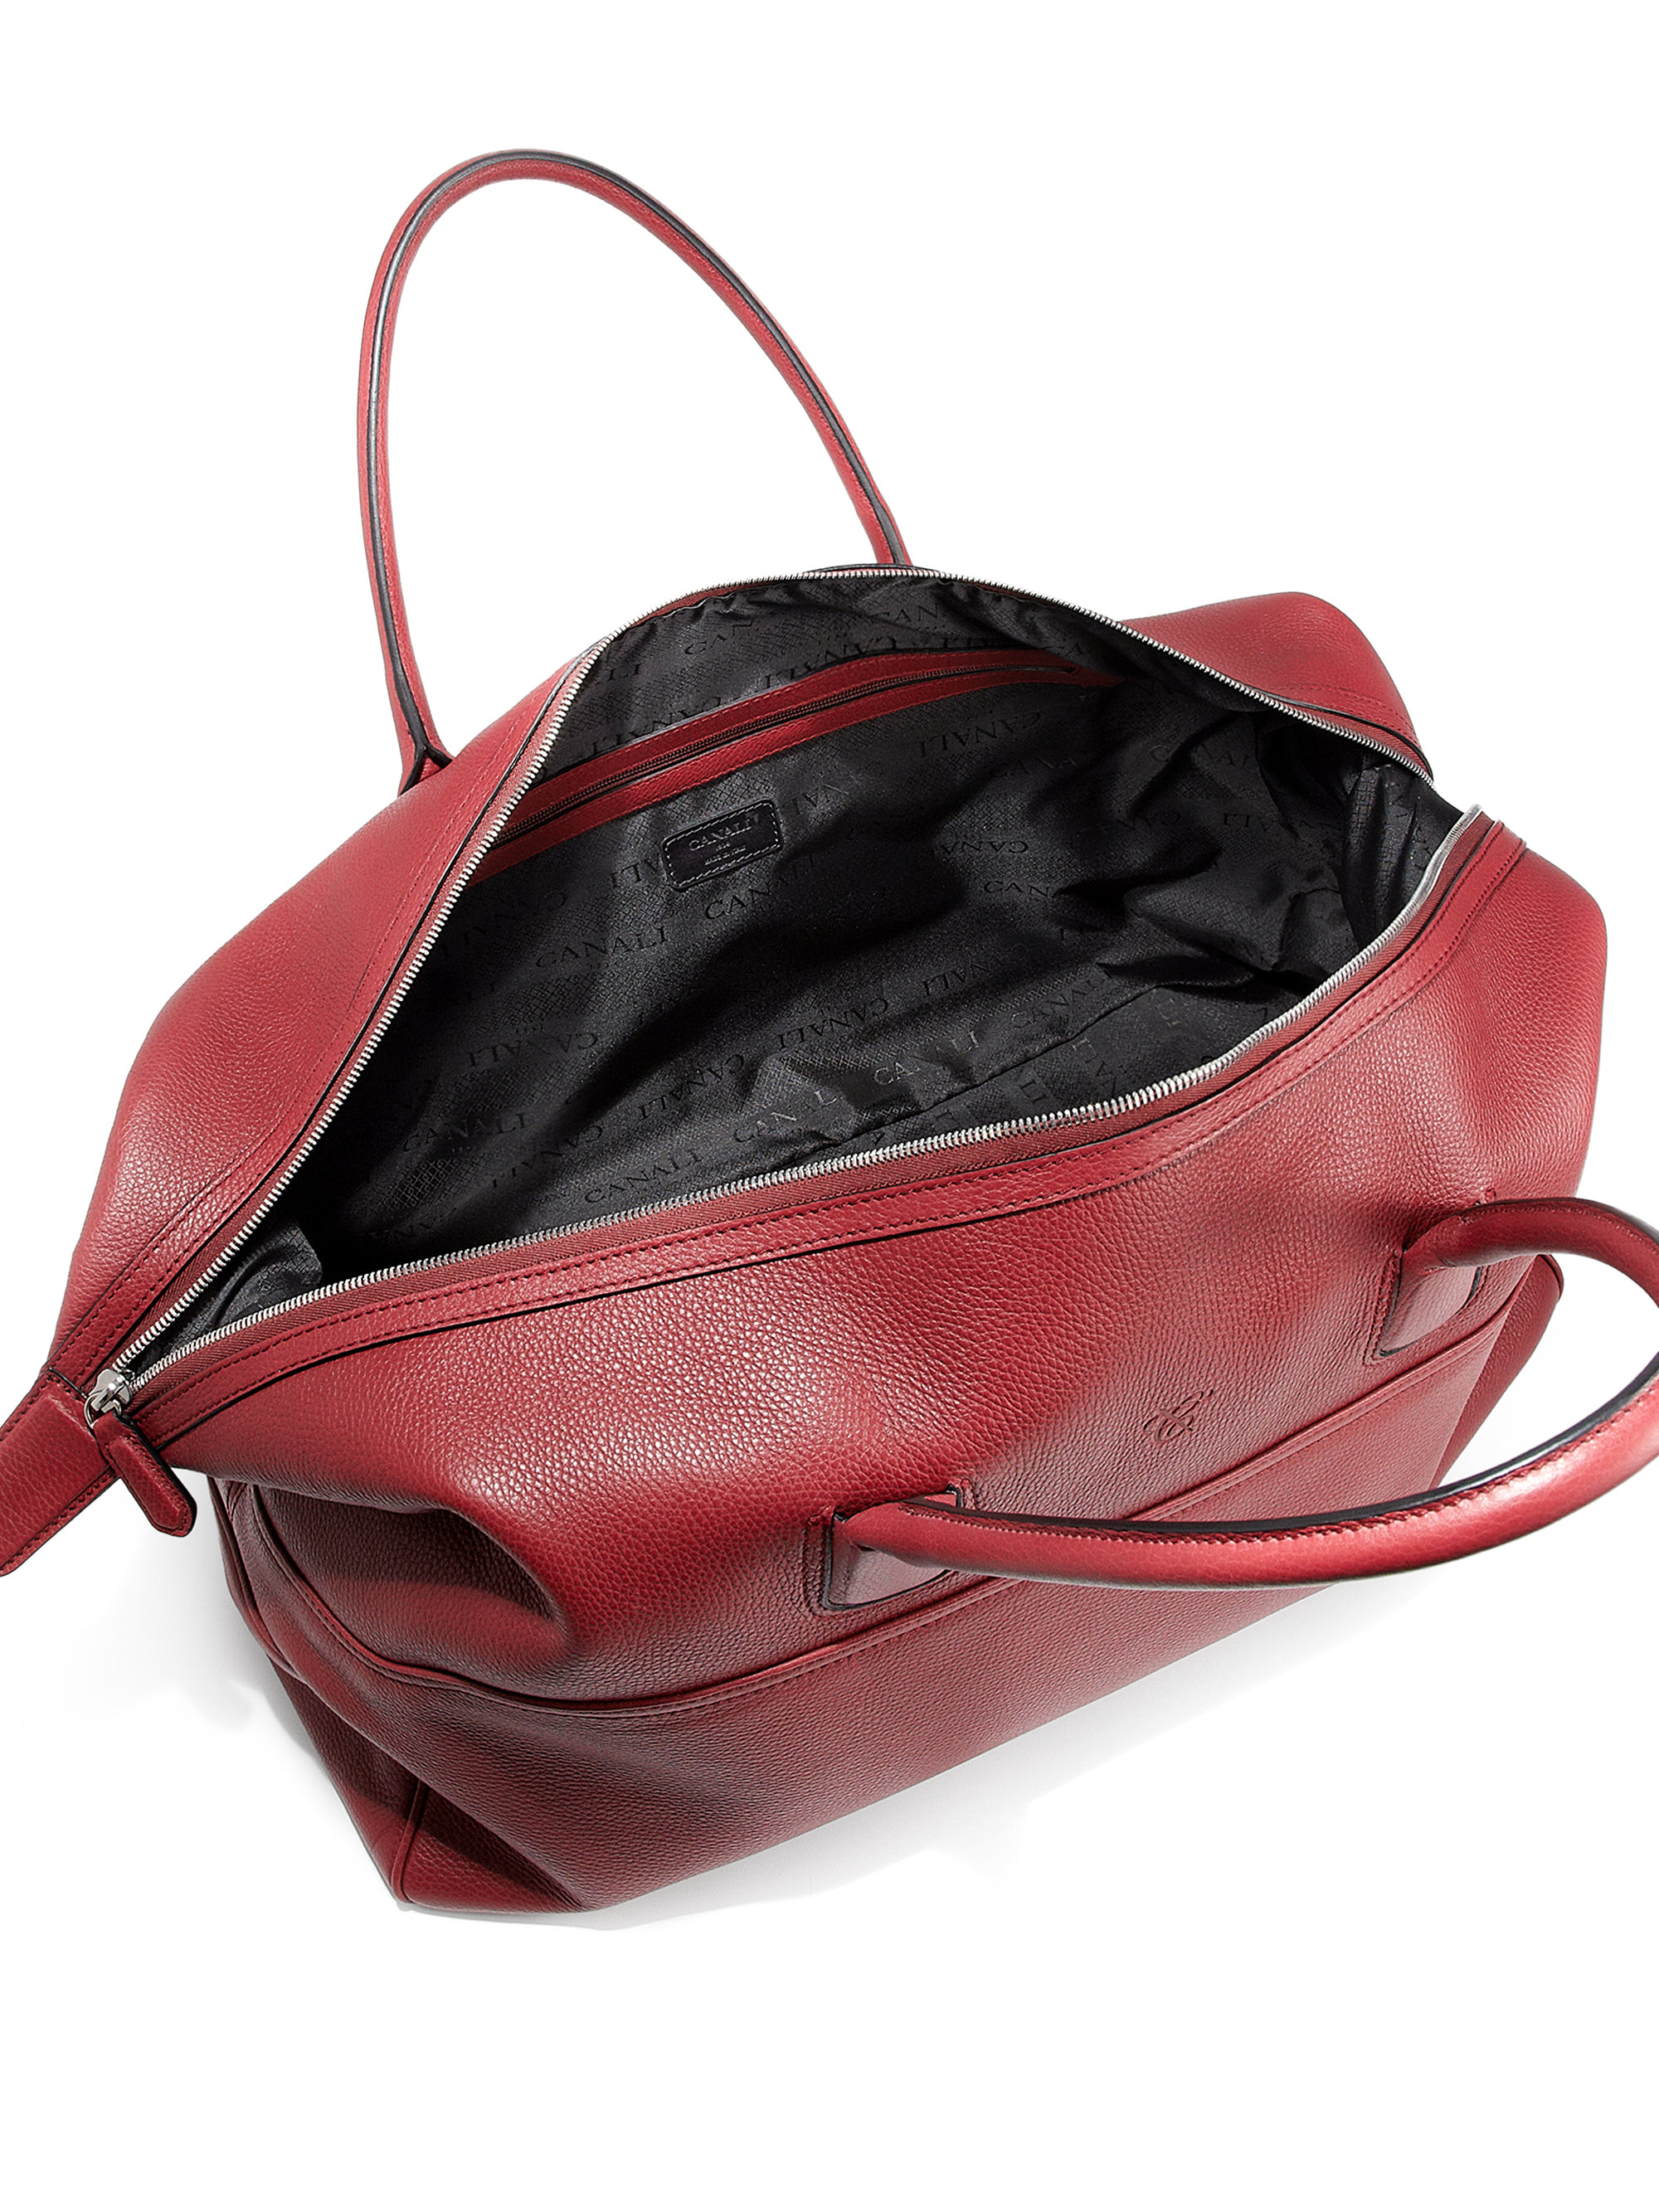 99ee043f3 Canali Leather Duffle Bag in Red for Men - Lyst